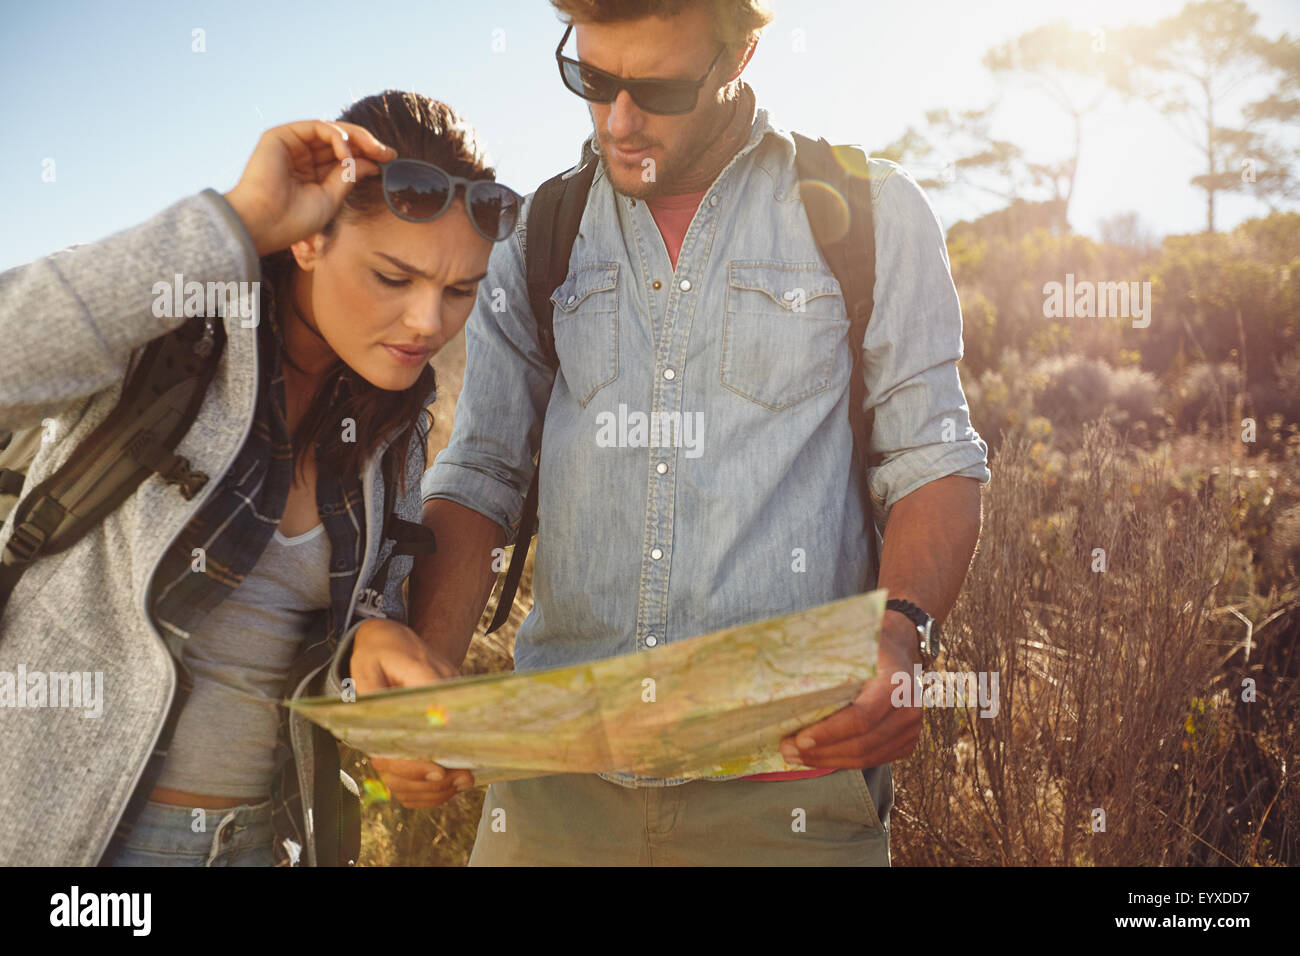 Hikers looking at map. Couple navigating together during travel hike outdoors in countryside. - Stock Image